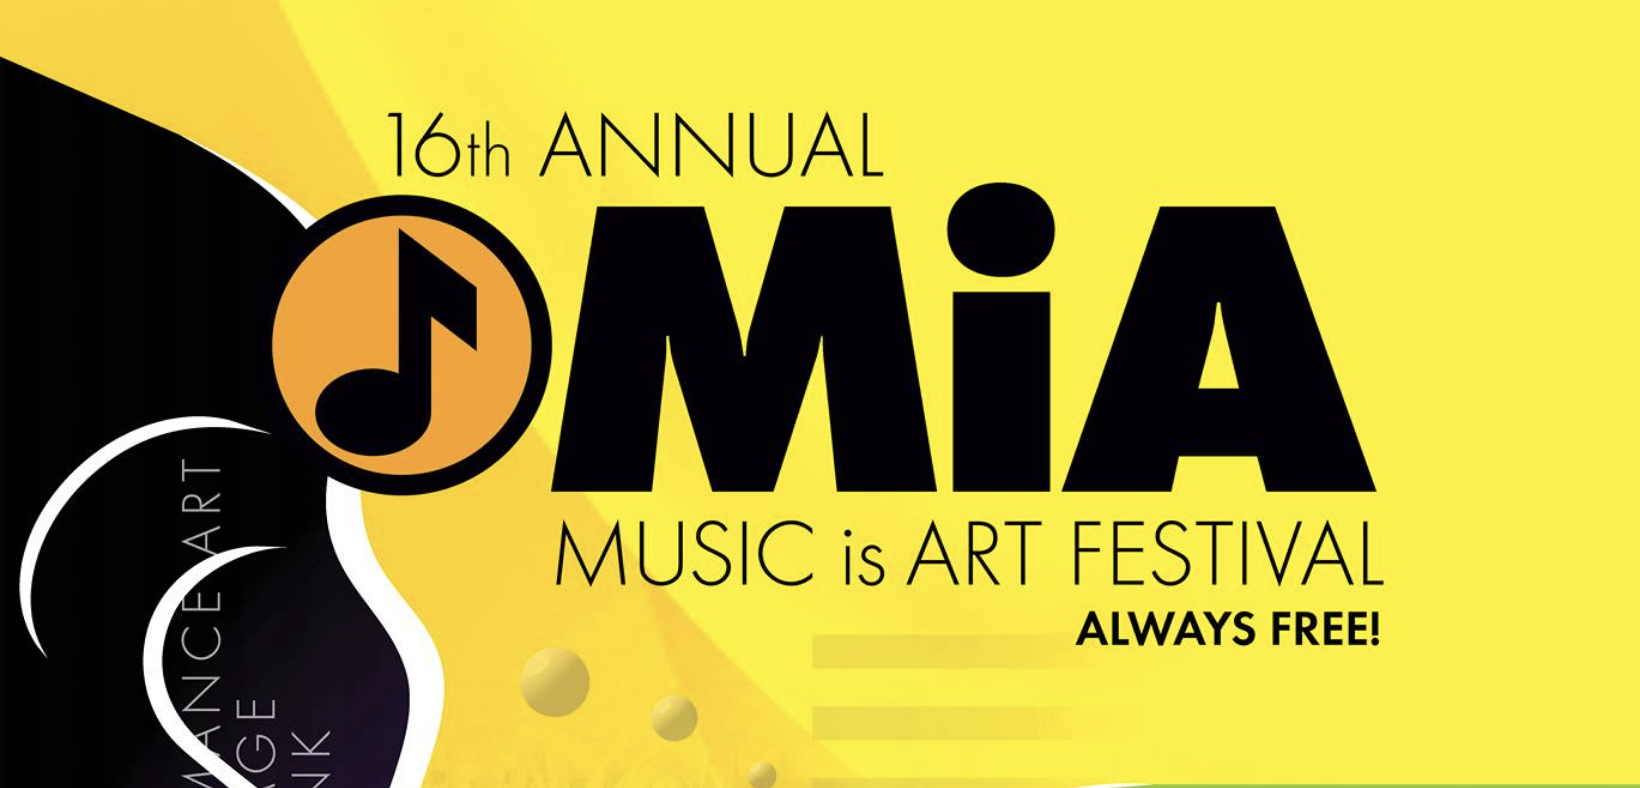 Upcoming Event - Music is Art Festival, Buffalo NY